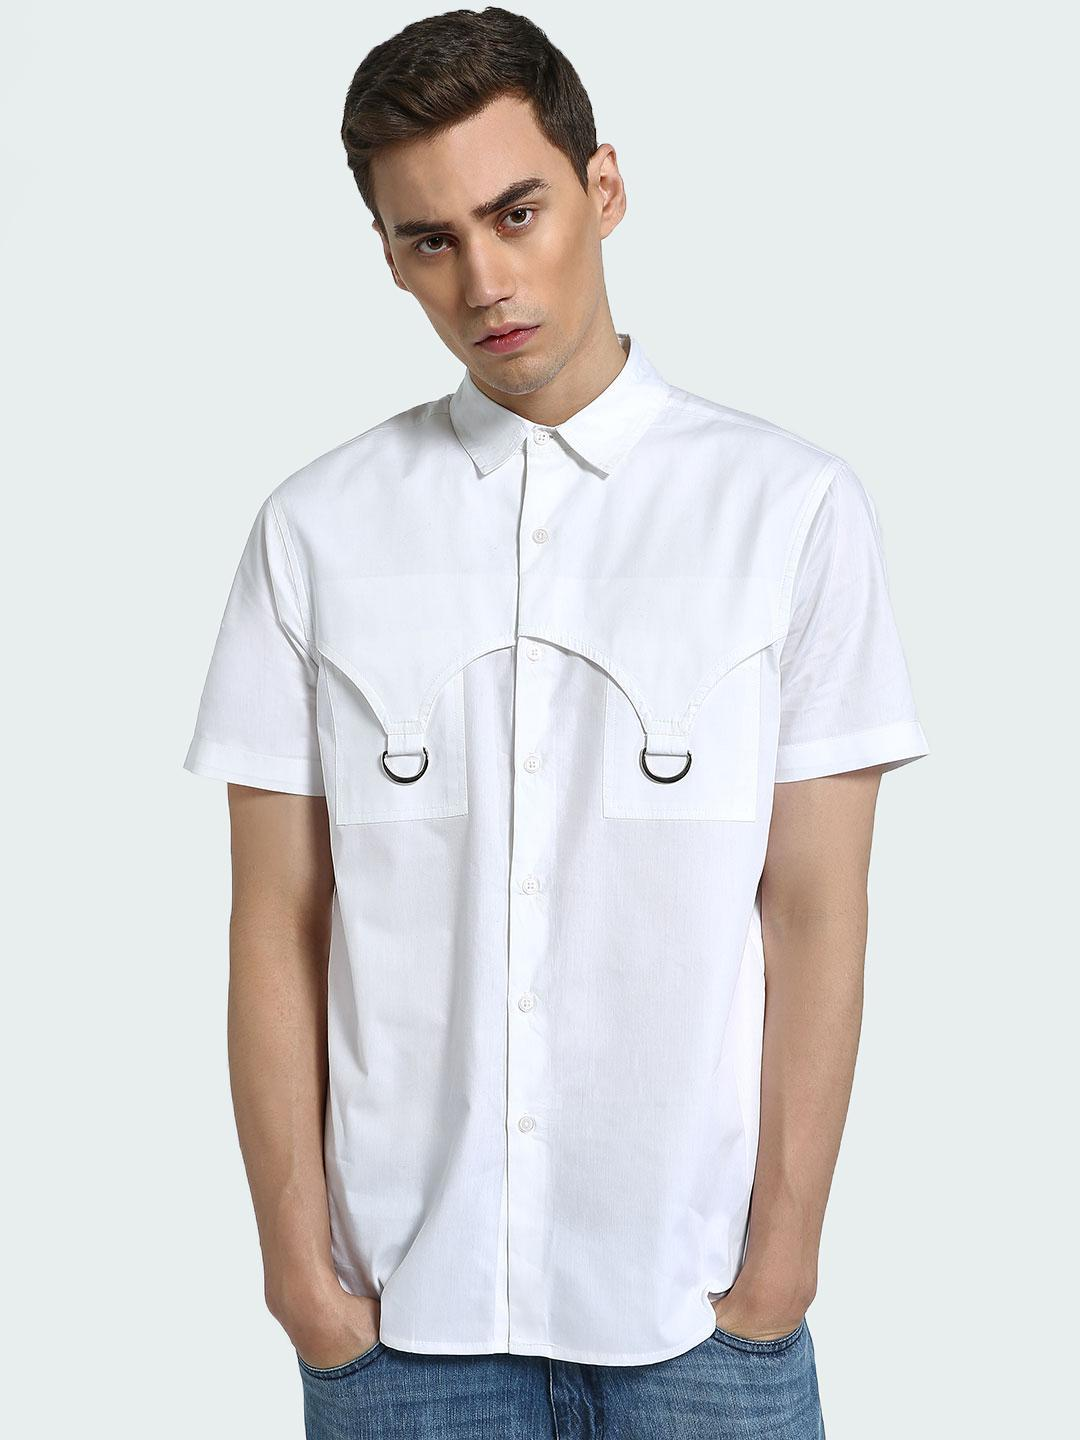 CHELSEA KING White D-Ring Detail Smart Shirt 1